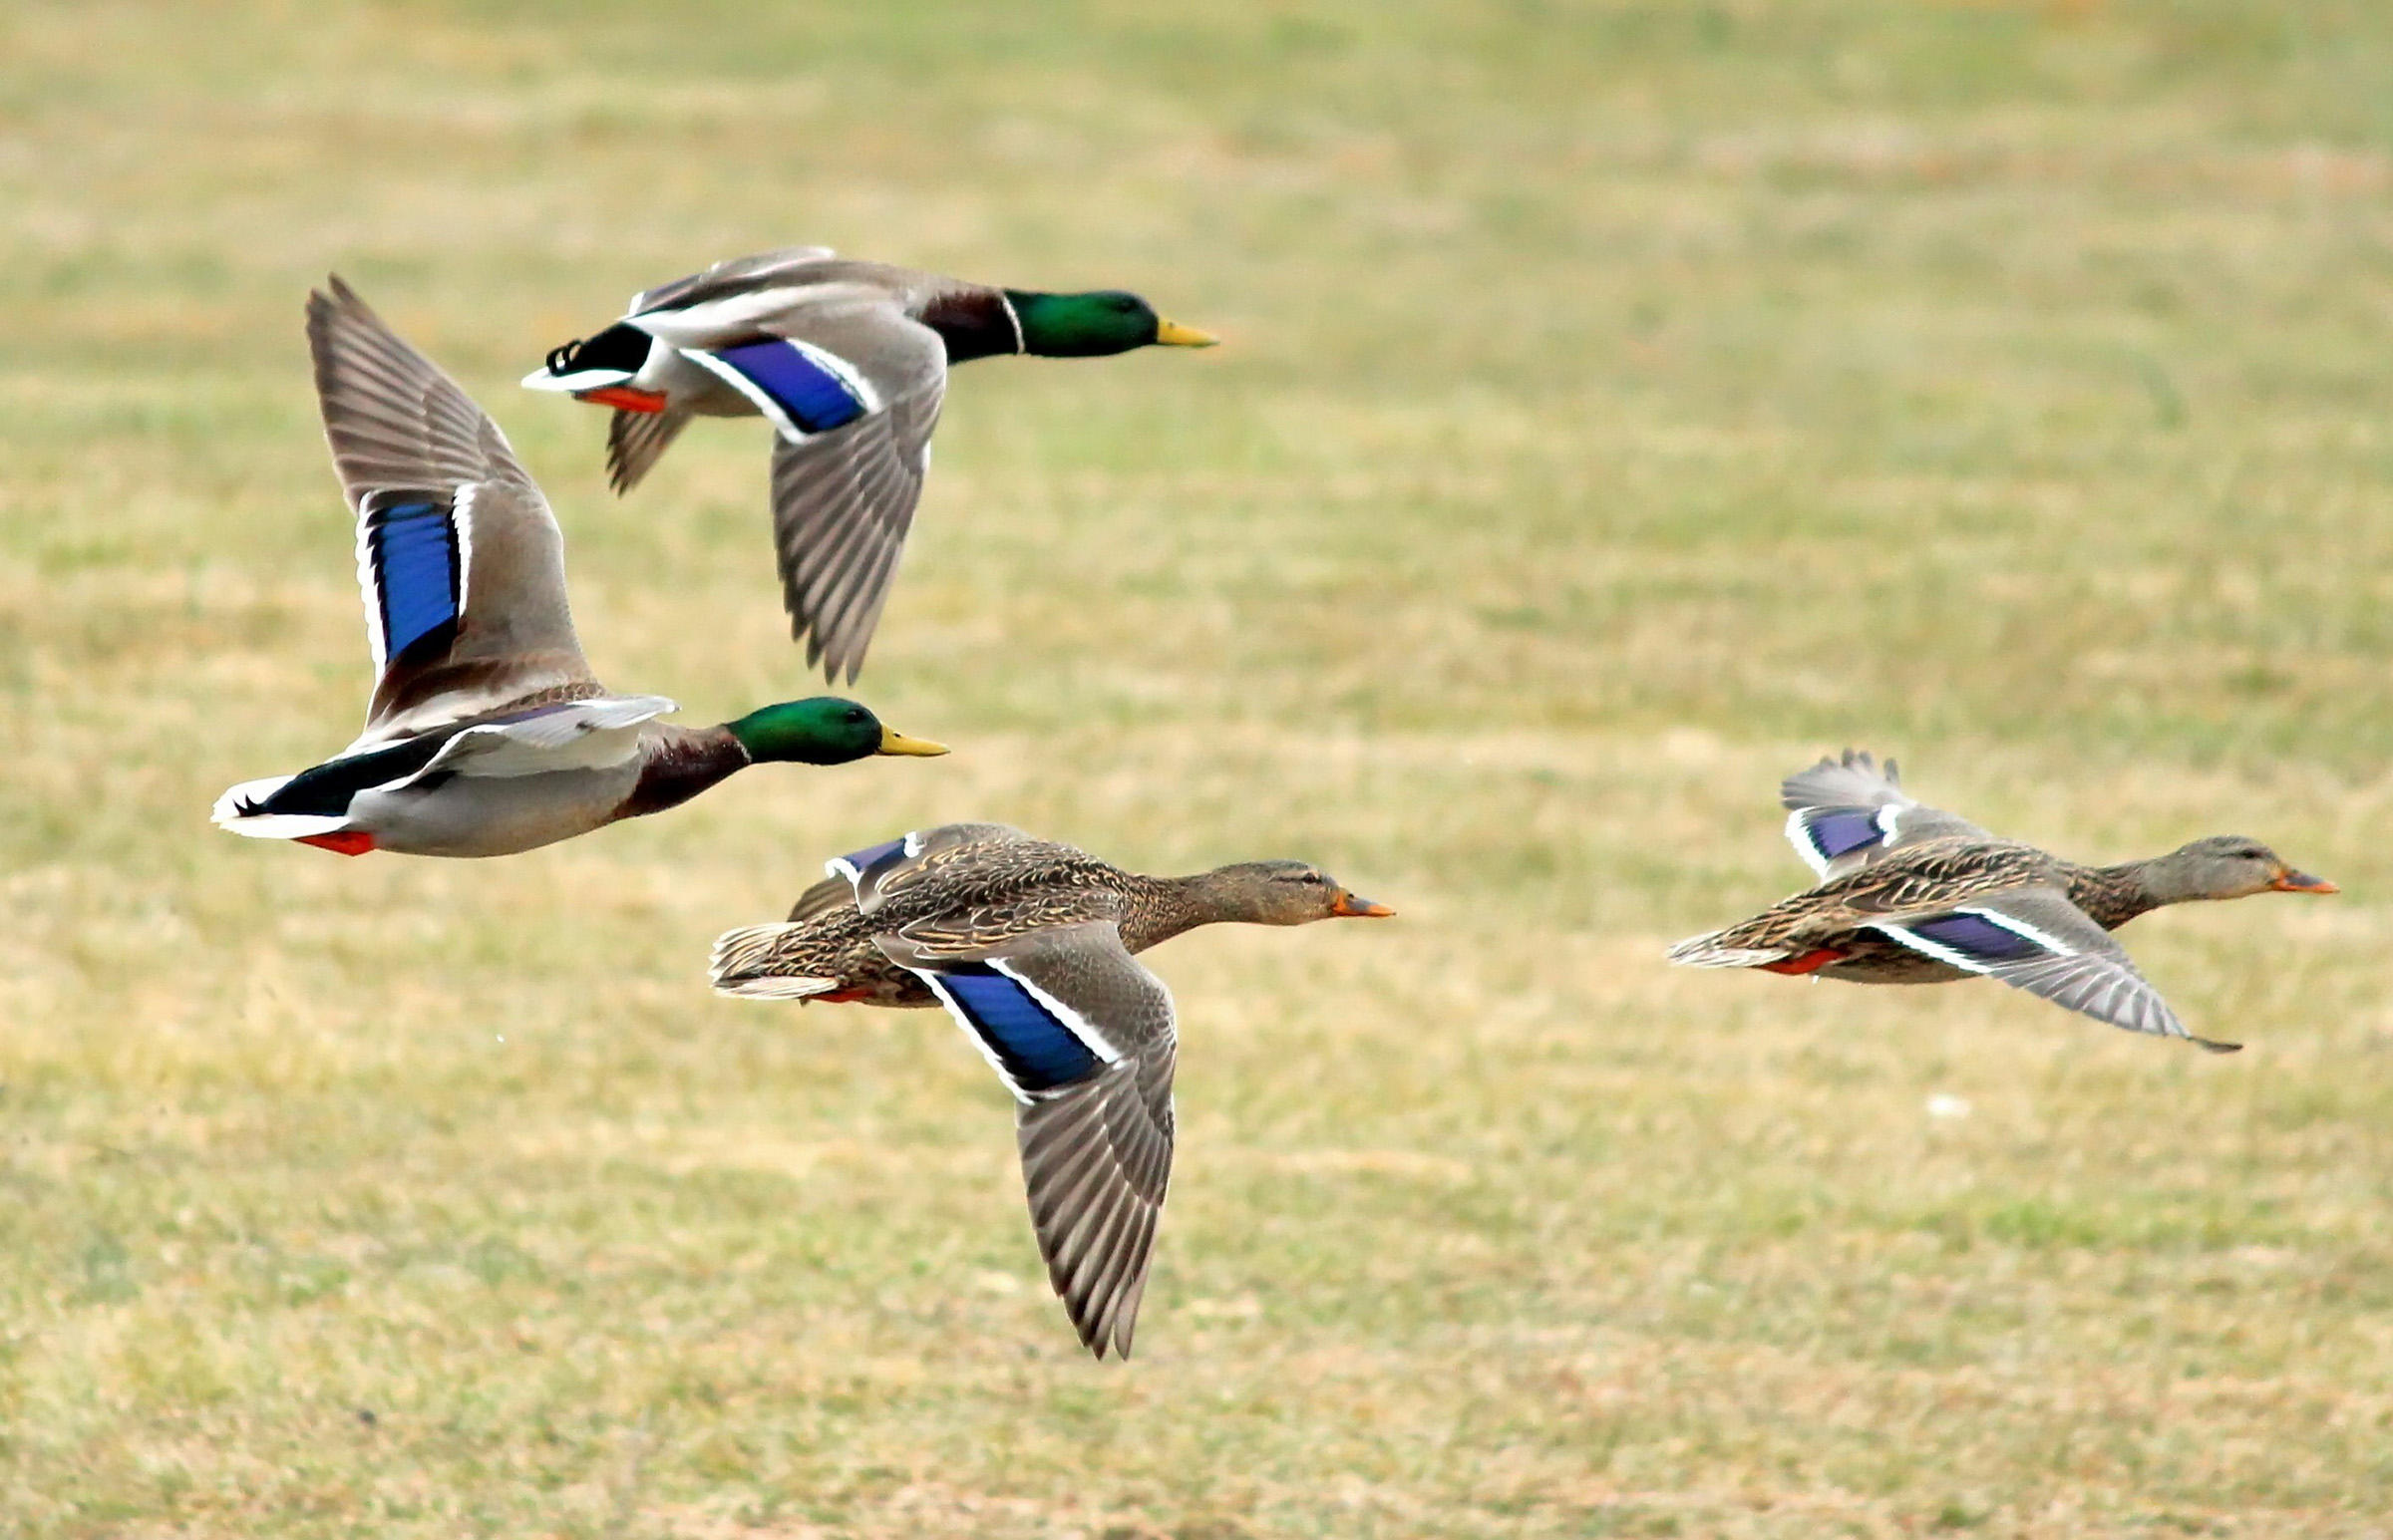 Free photo: Flying ducks - Sky, Wings, Free - Free Download - Jooinn